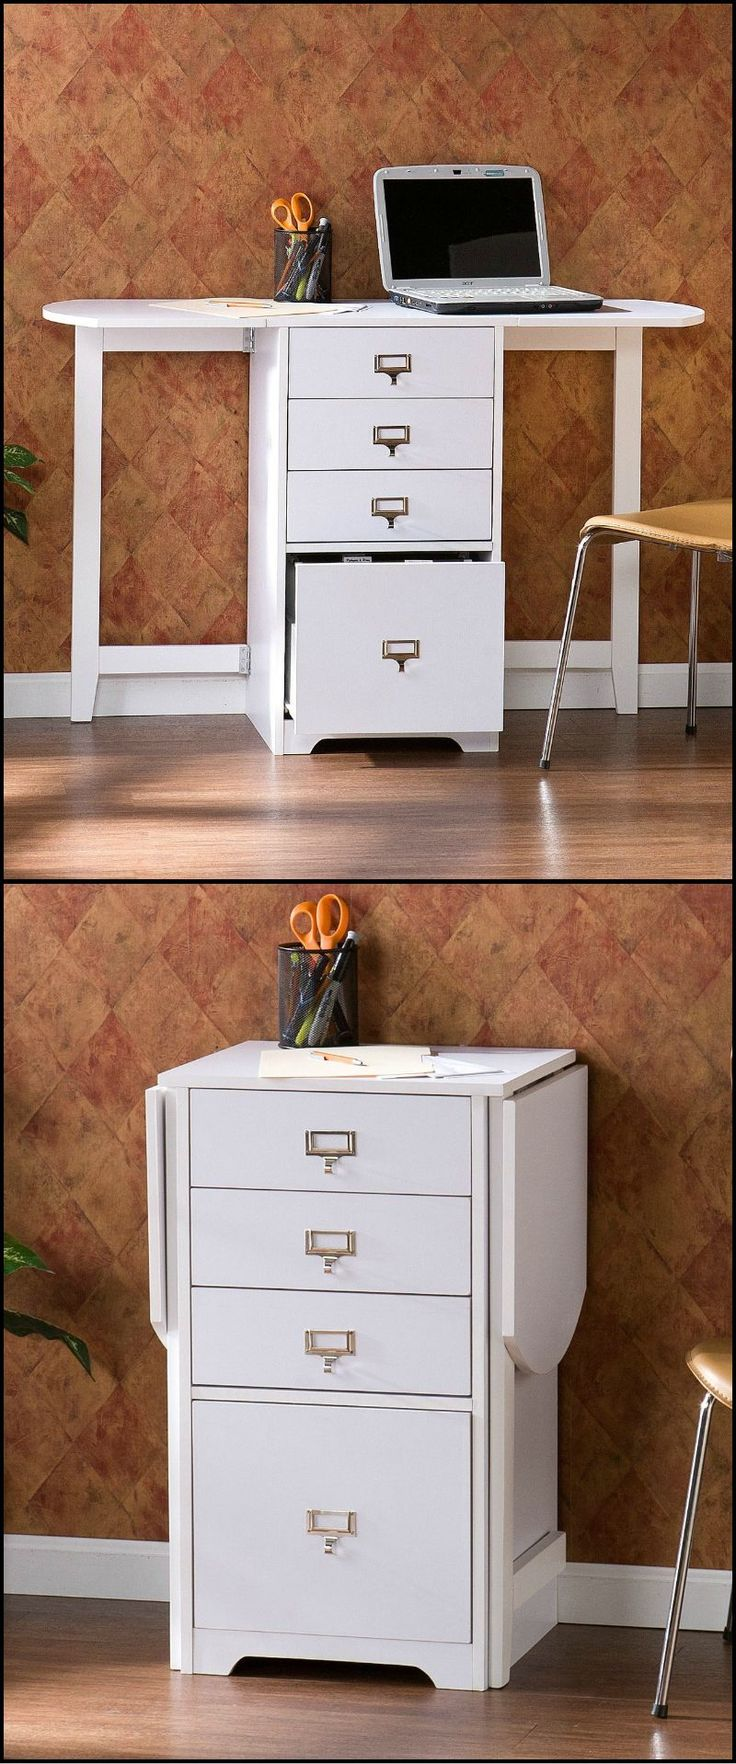 "Whether you need organization in the craft room, home office, or bedroom this folding organizer desk is a great space saving solution.  http://theownerbuildernetwork.co/8w2n  With the leafs on each side folded down, this desk is as small as a common end table or file cabinet. Open both sides for a very functional 48"" work area.  In addition there are three small drawers to make room for common items and a lower letter file that's perfect for bills and paperwork."